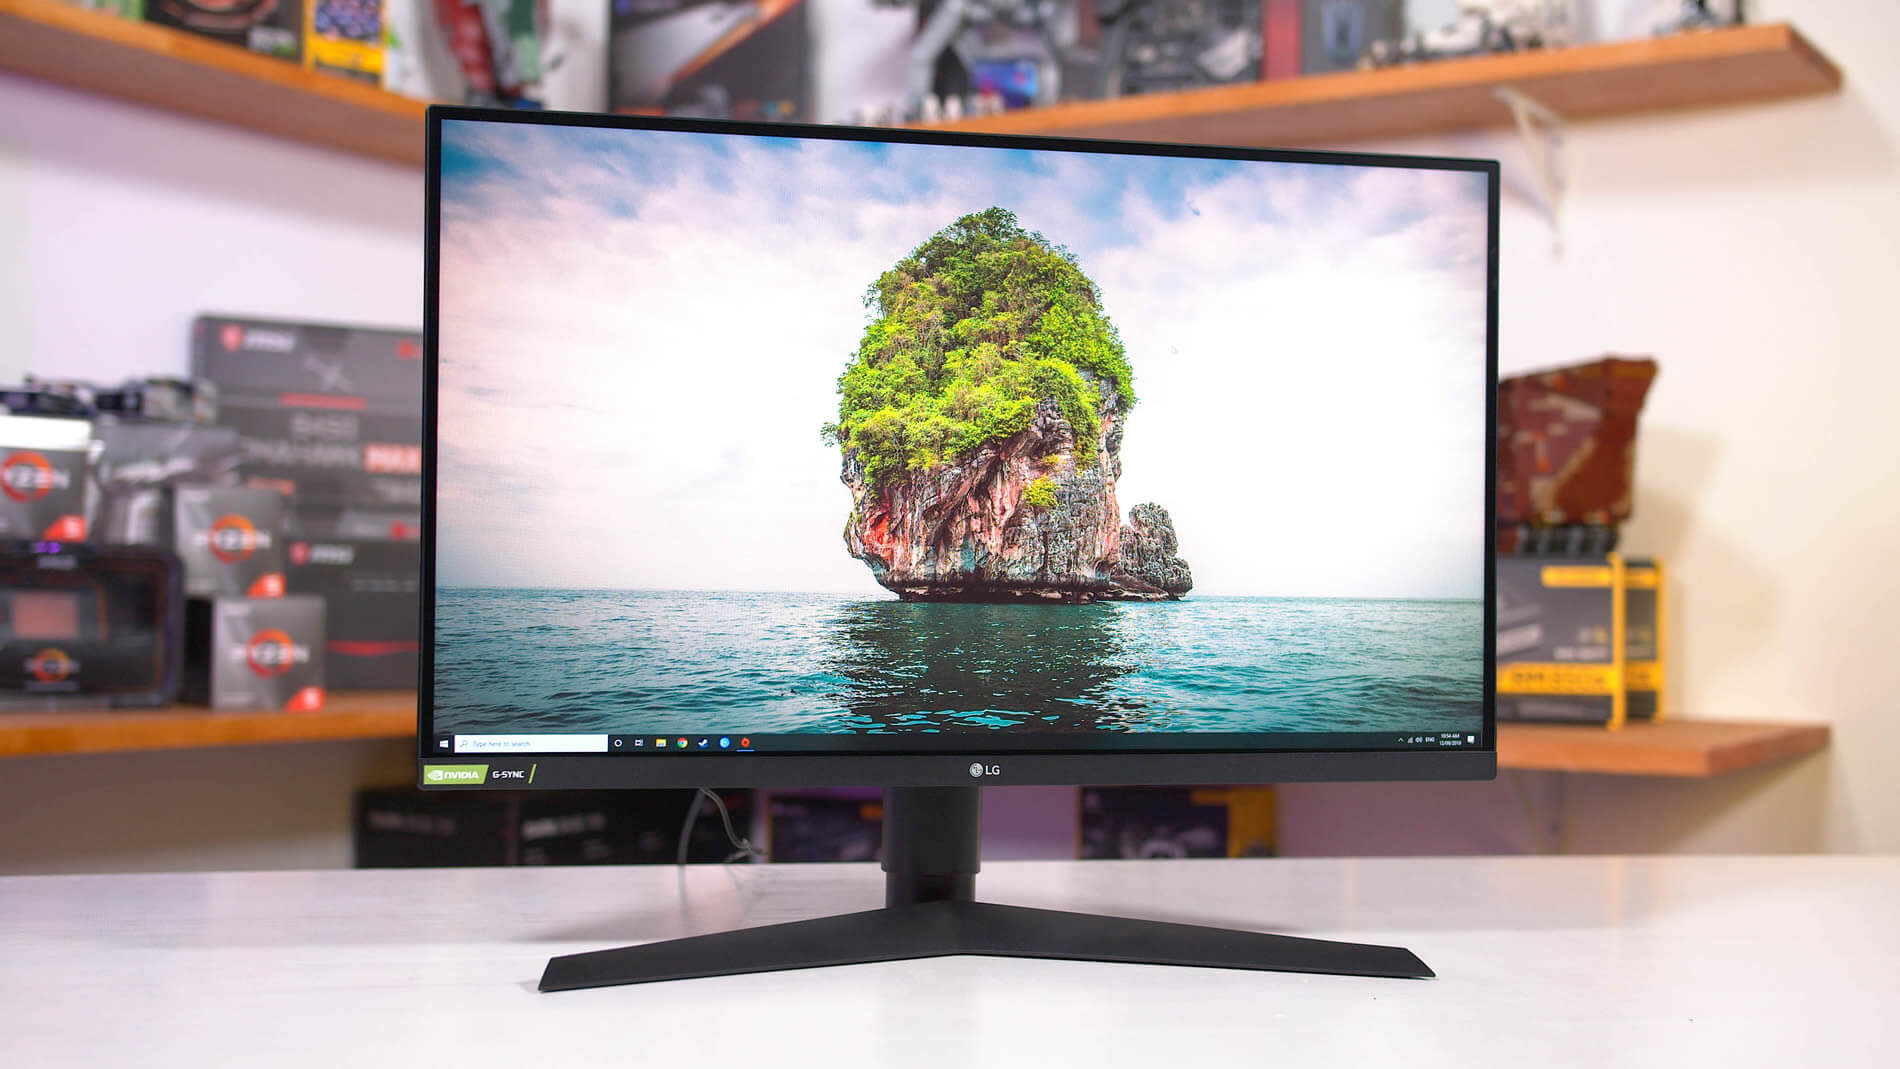 1440P 144Hz Monitor lg 27gl850 review: fast ips for gaming - techspot